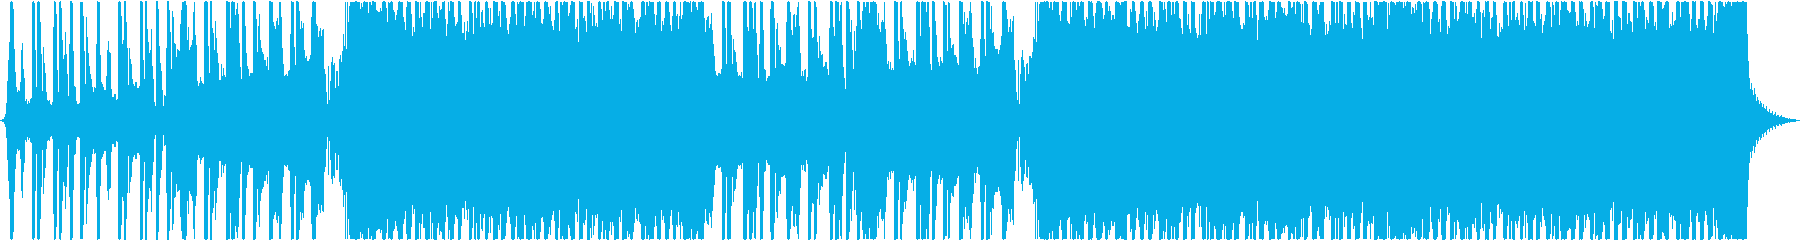 Fashion driving lock's reproduced waveform